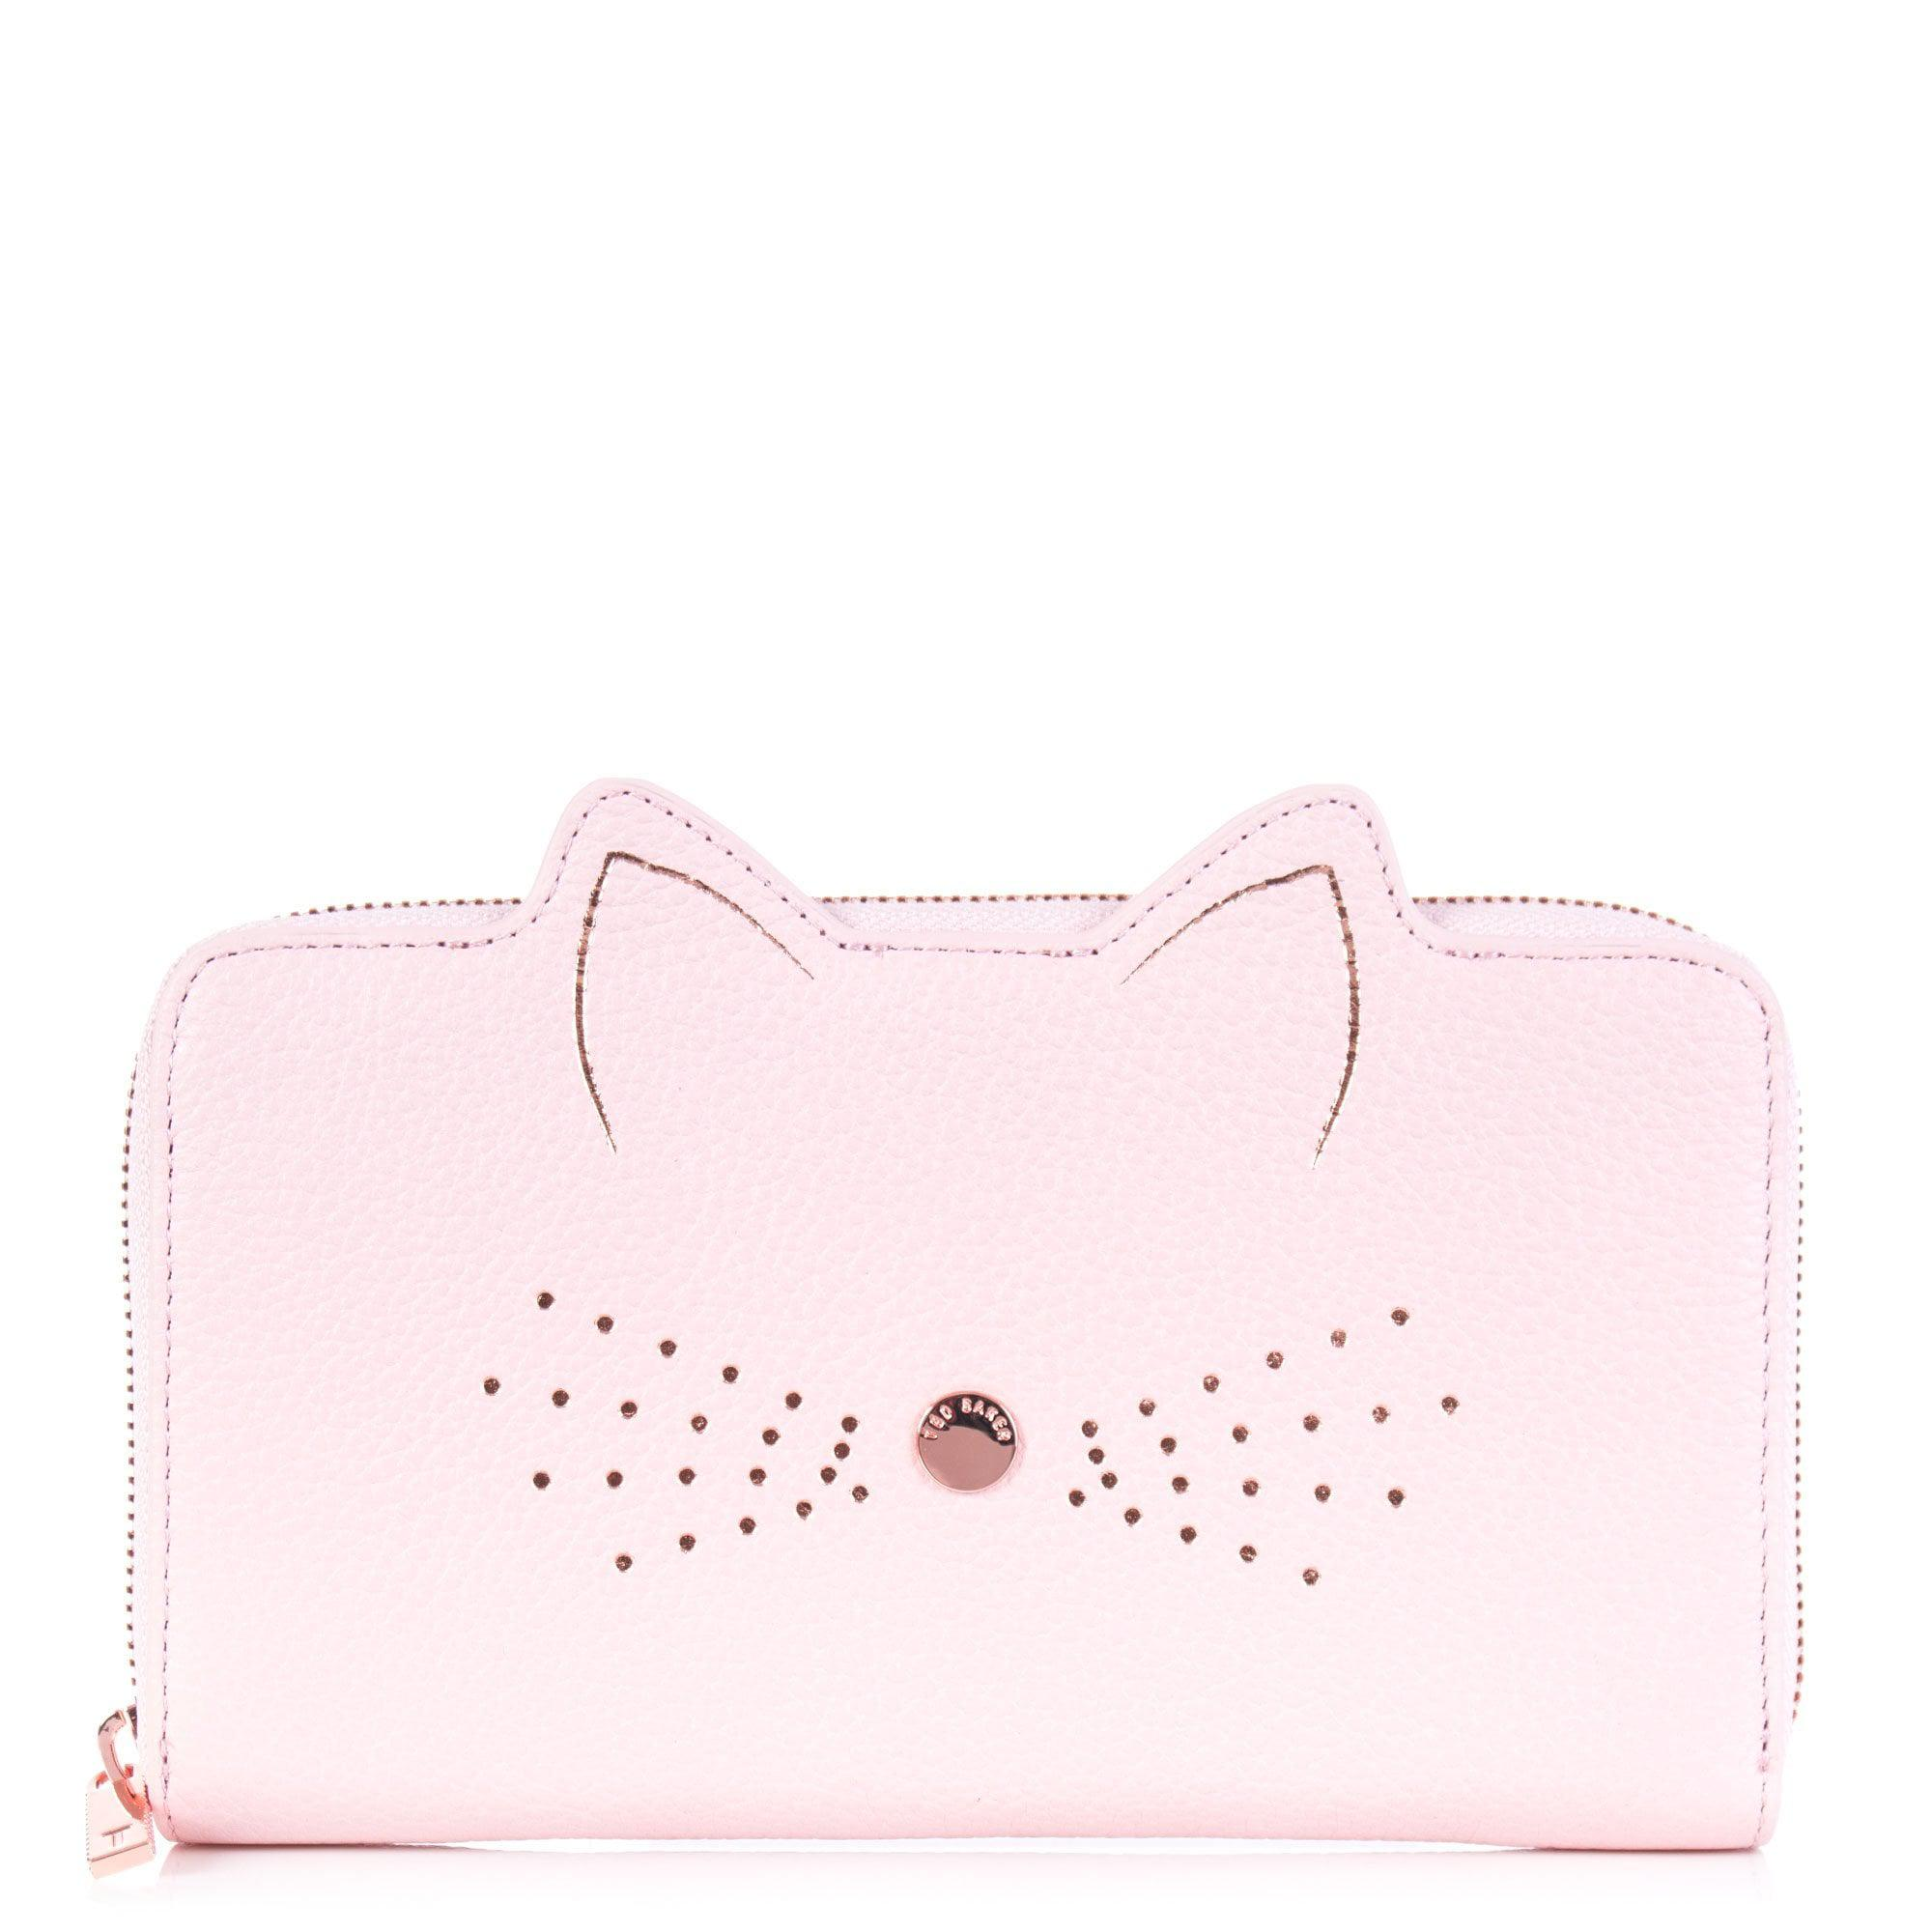 cd8f9c2c86f969 Ted Baker Serini Cat Whiskers Leather Purse in Pink - Lyst